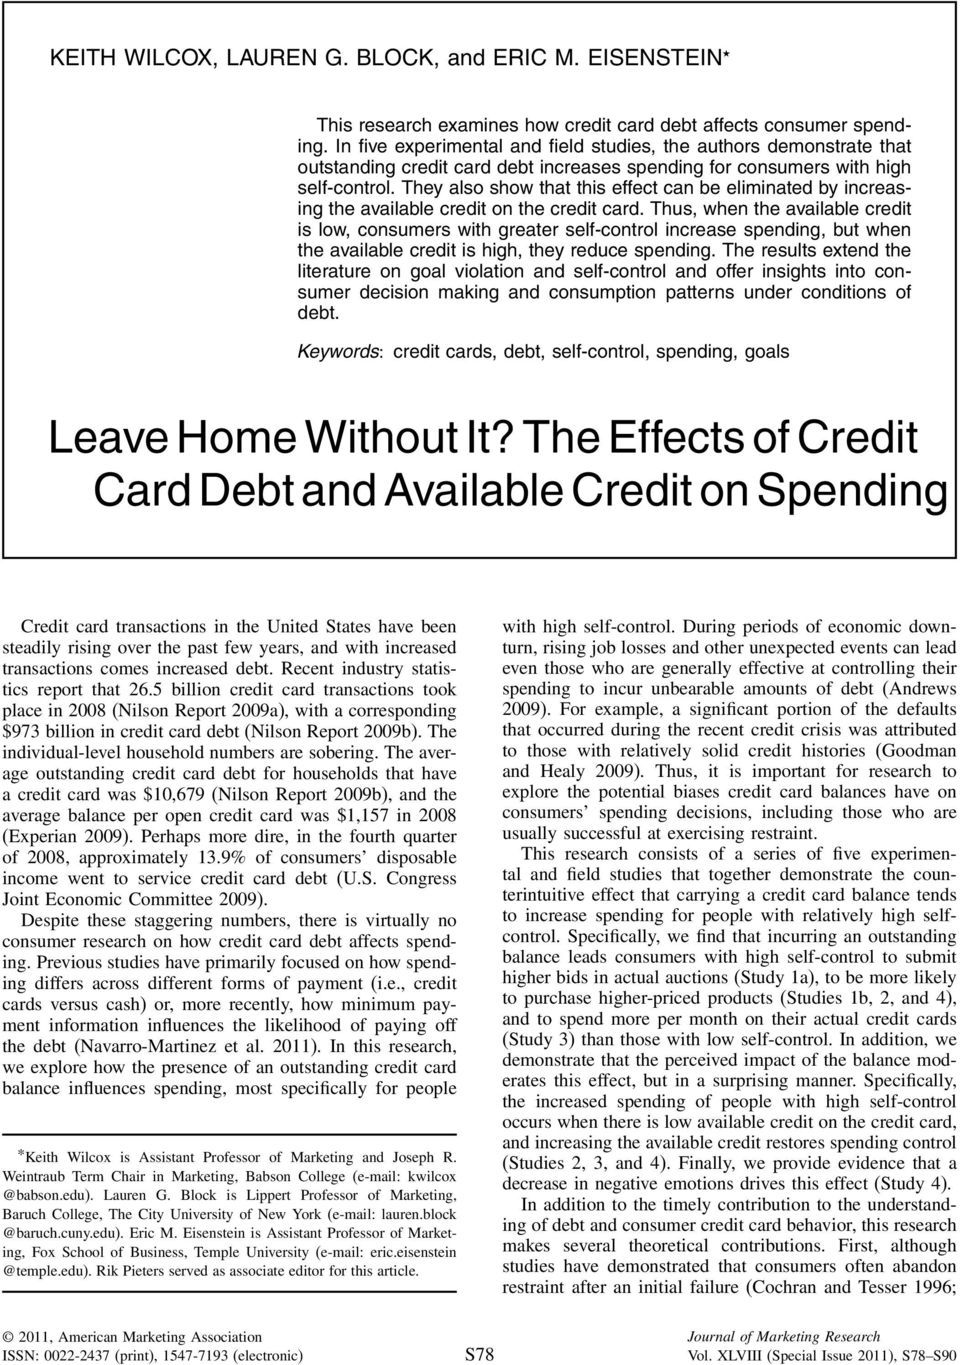 They also show that this effect can be eliminated by increasing the available credit on the credit card.